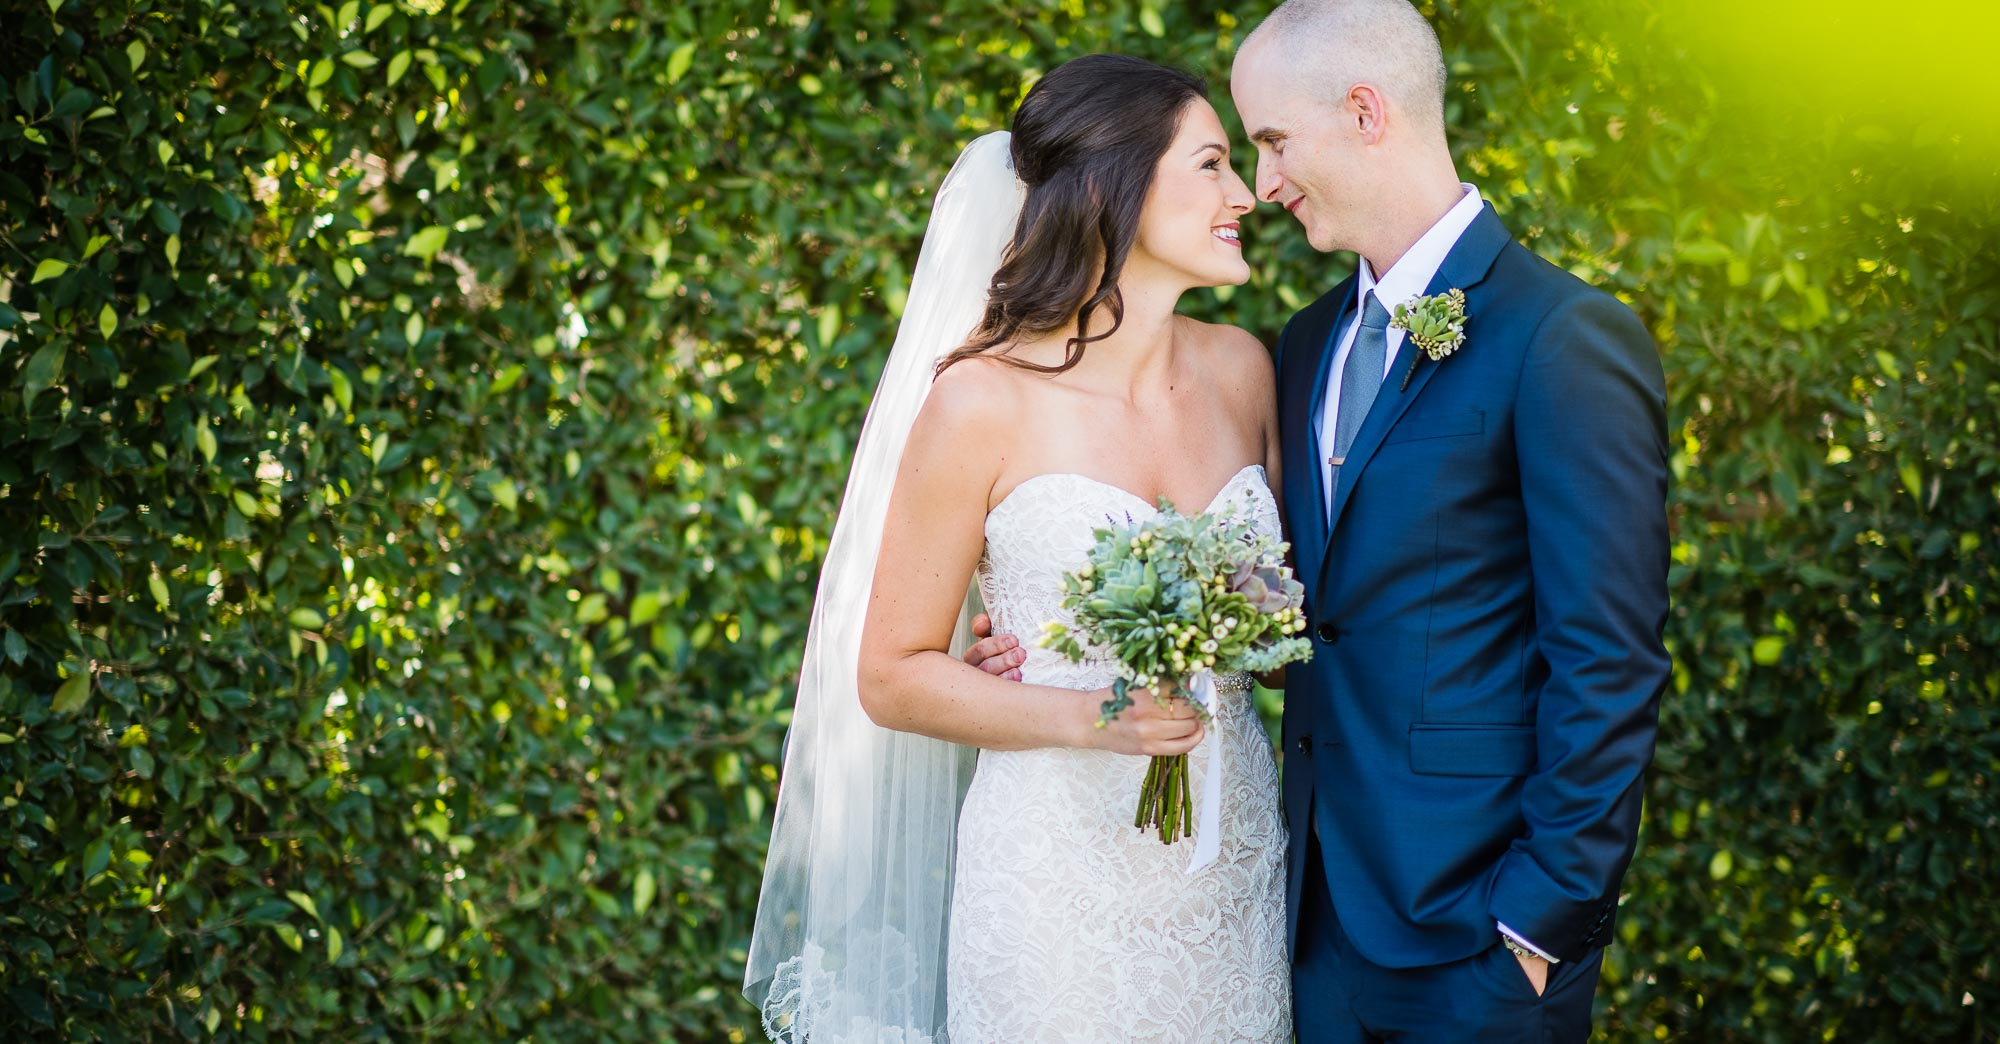 Laura & Mike's Cree Estate Wedding – Palm Springs Wedding featured slider image